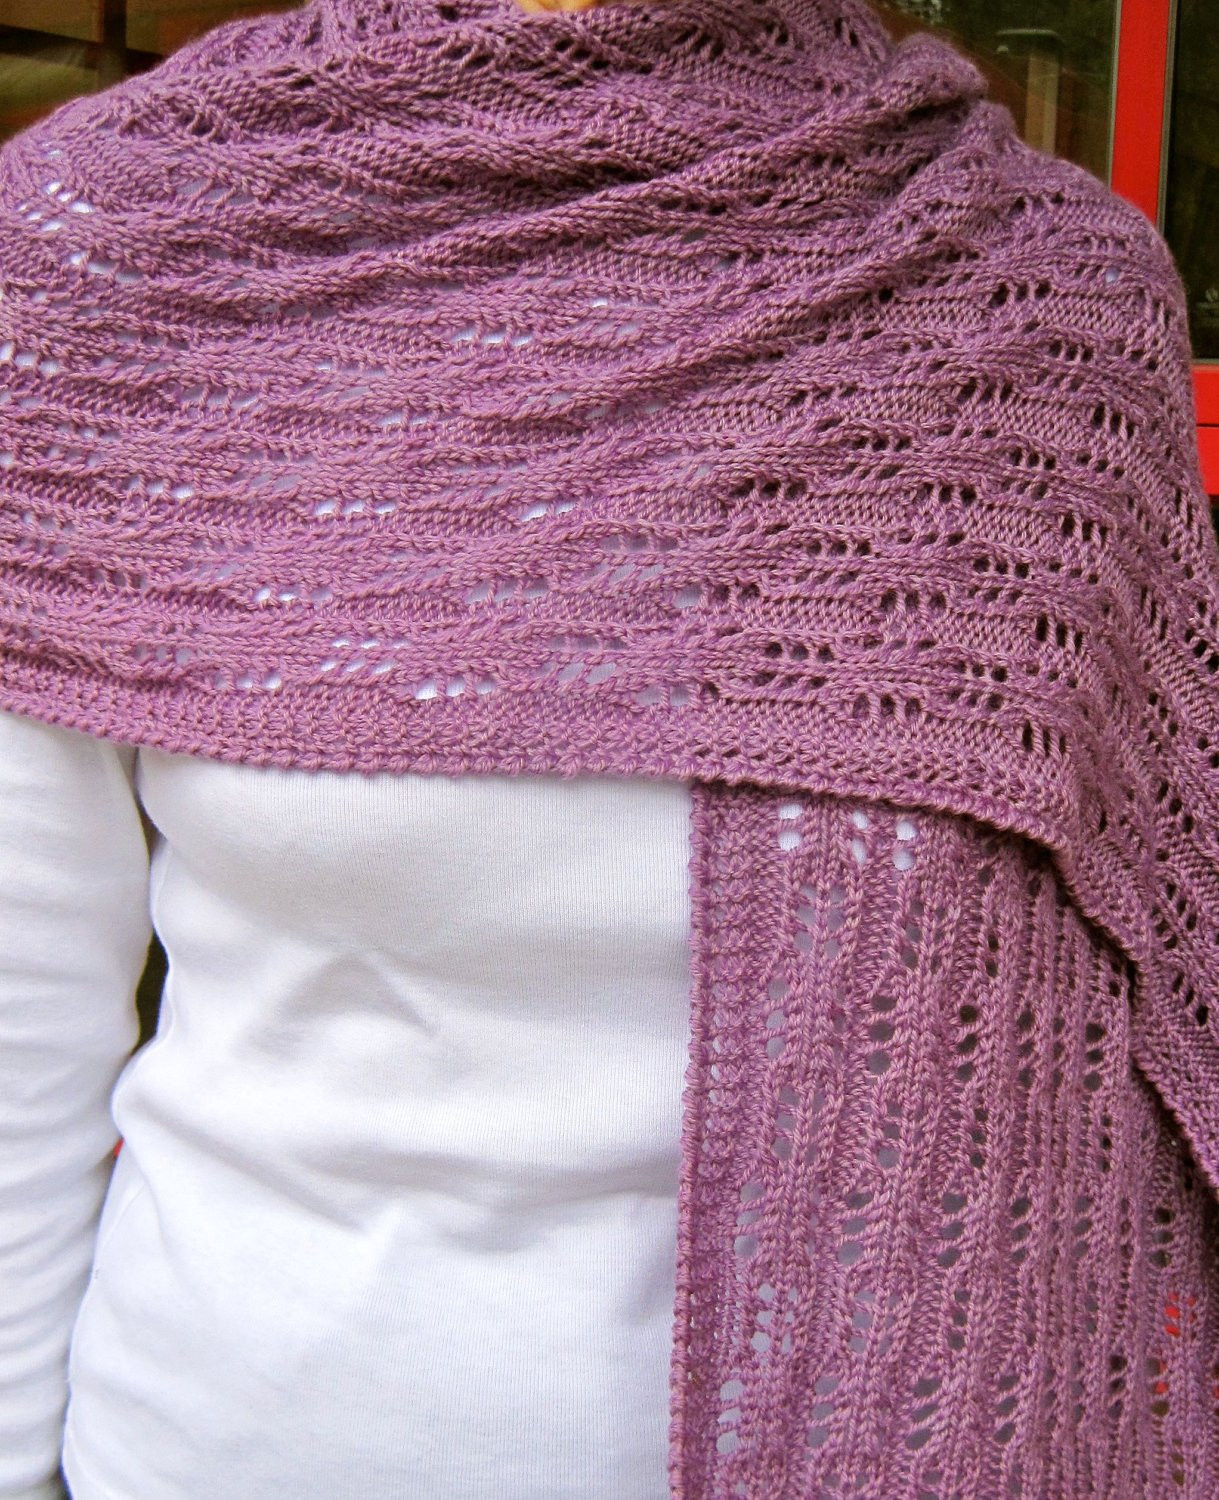 Best Of Knit Wrap Pattern Easy Eyelet Lace Shawl Knitting Pattern Easy Knit Shawl Of Fresh 44 Photos Easy Knit Shawl